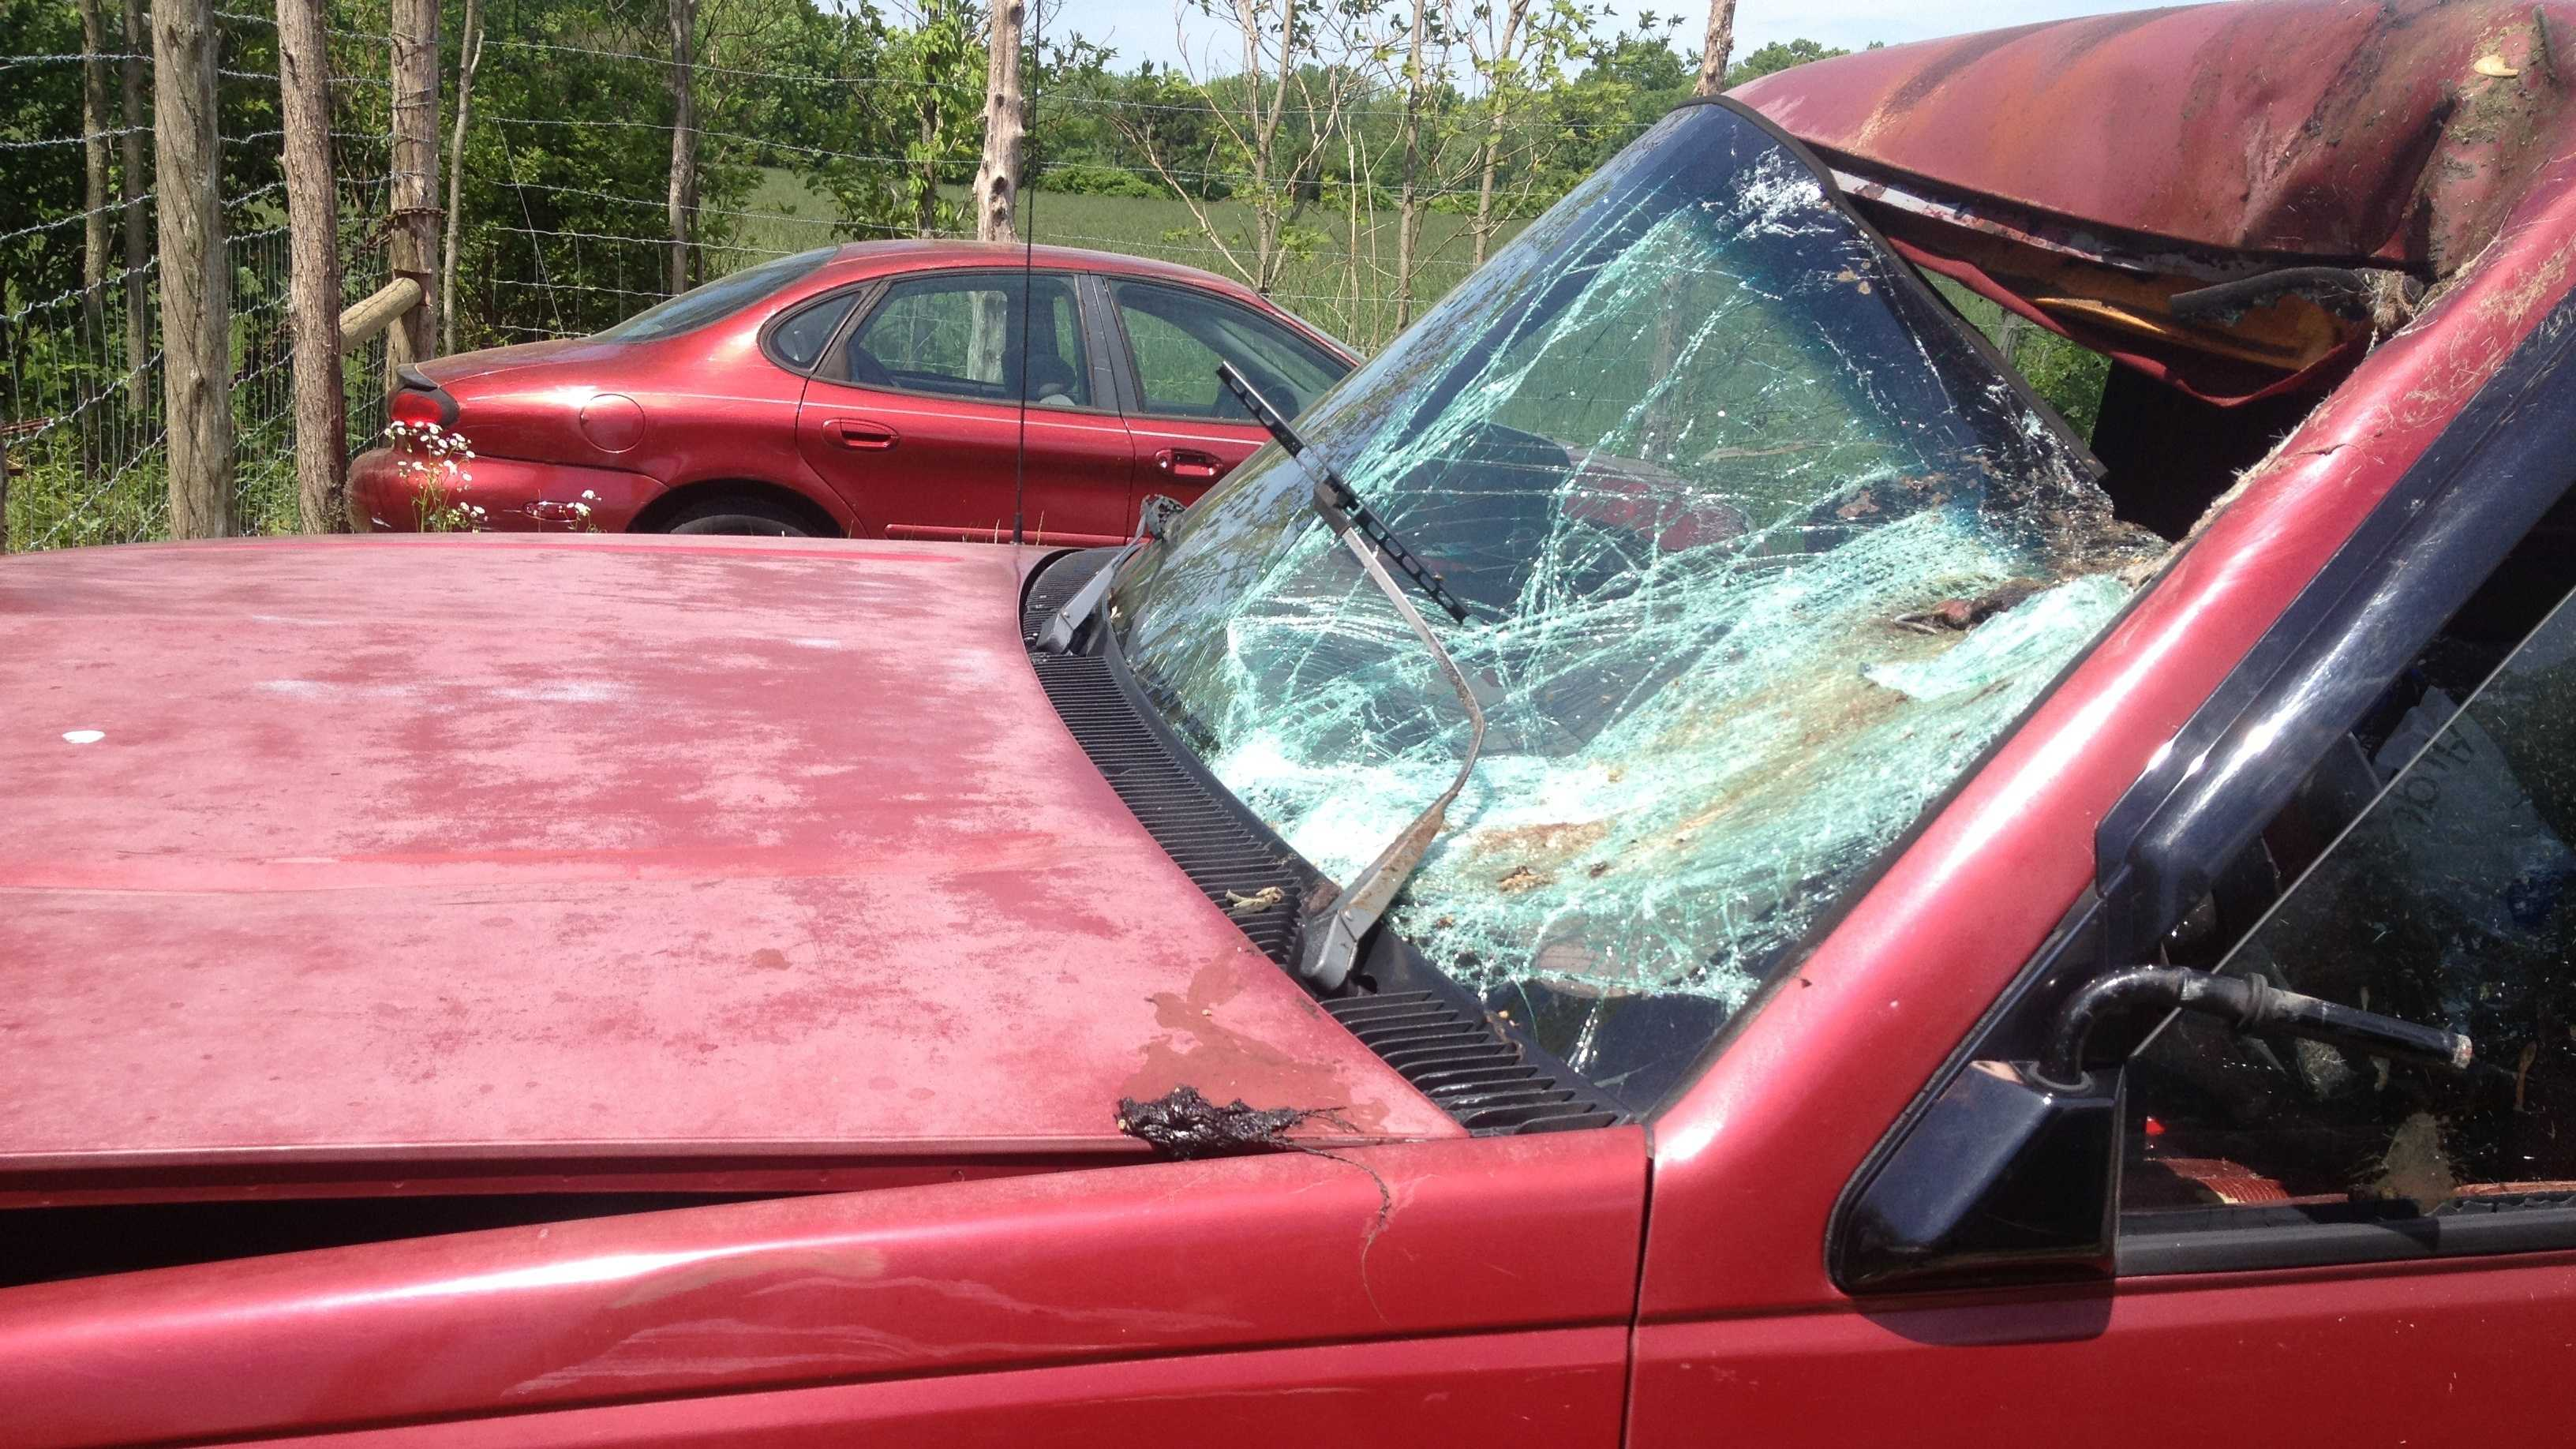 A Washington County, Ind., man died in a bizarre car accident.